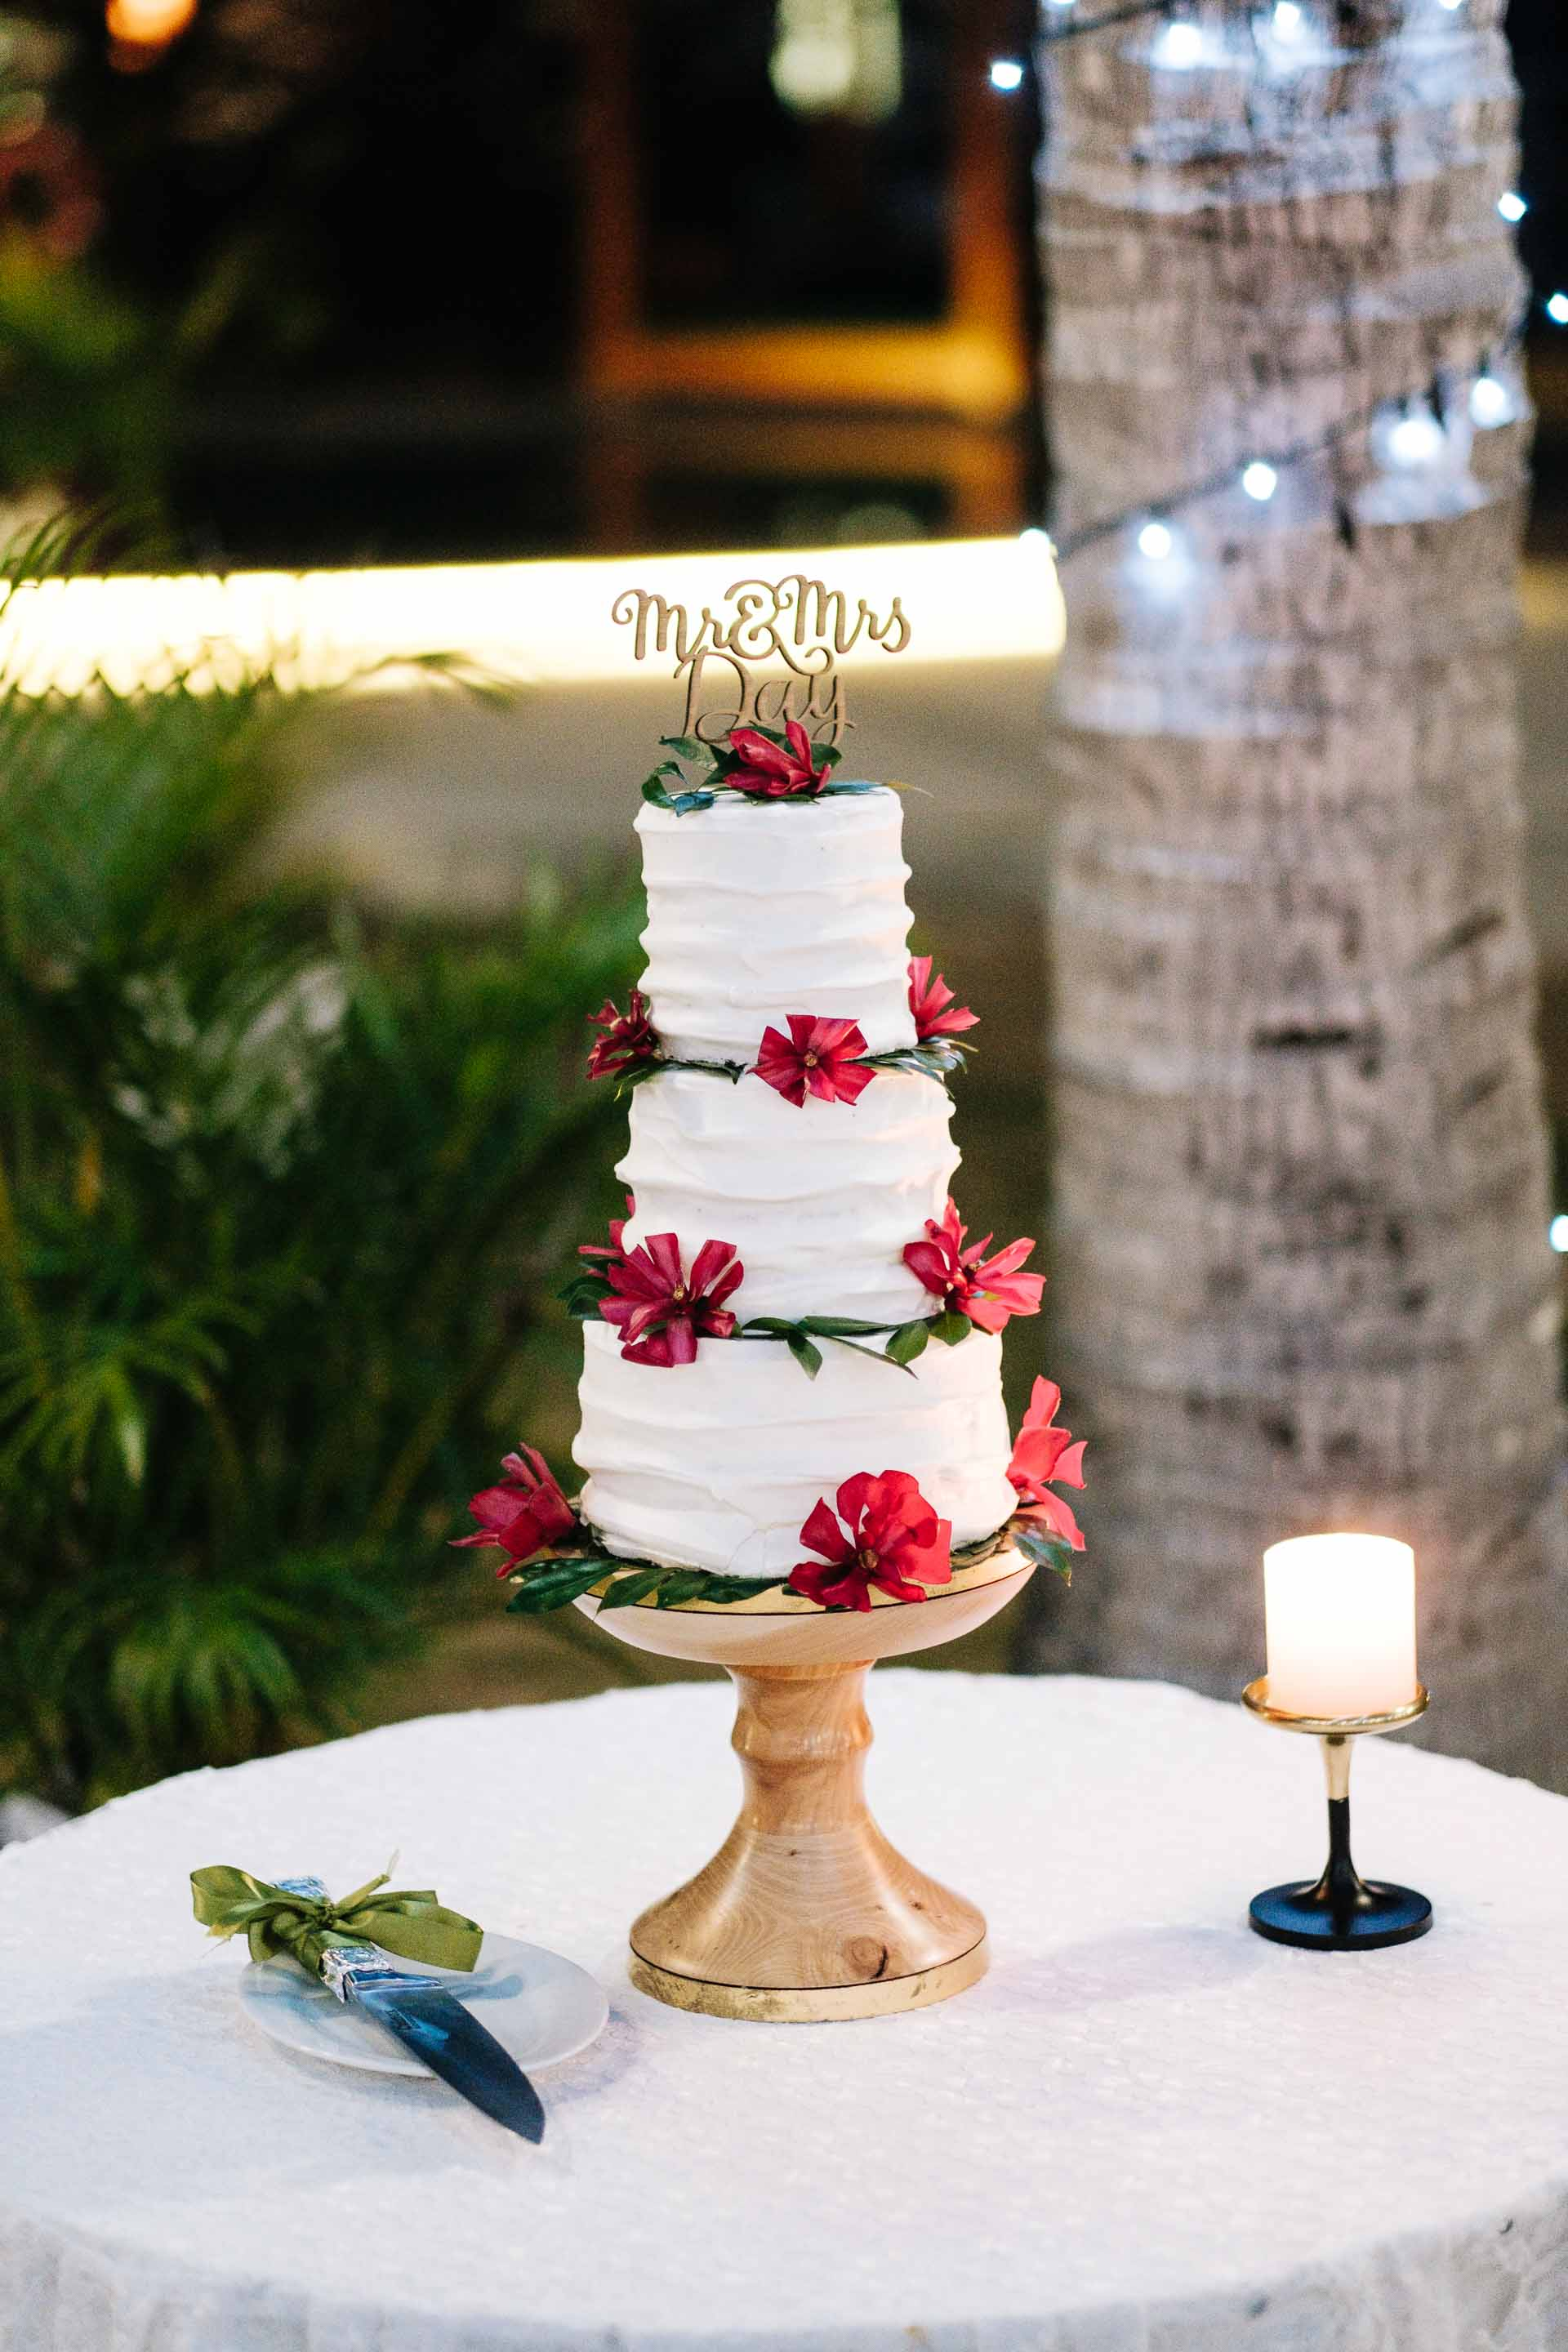 the wedding cake on its table